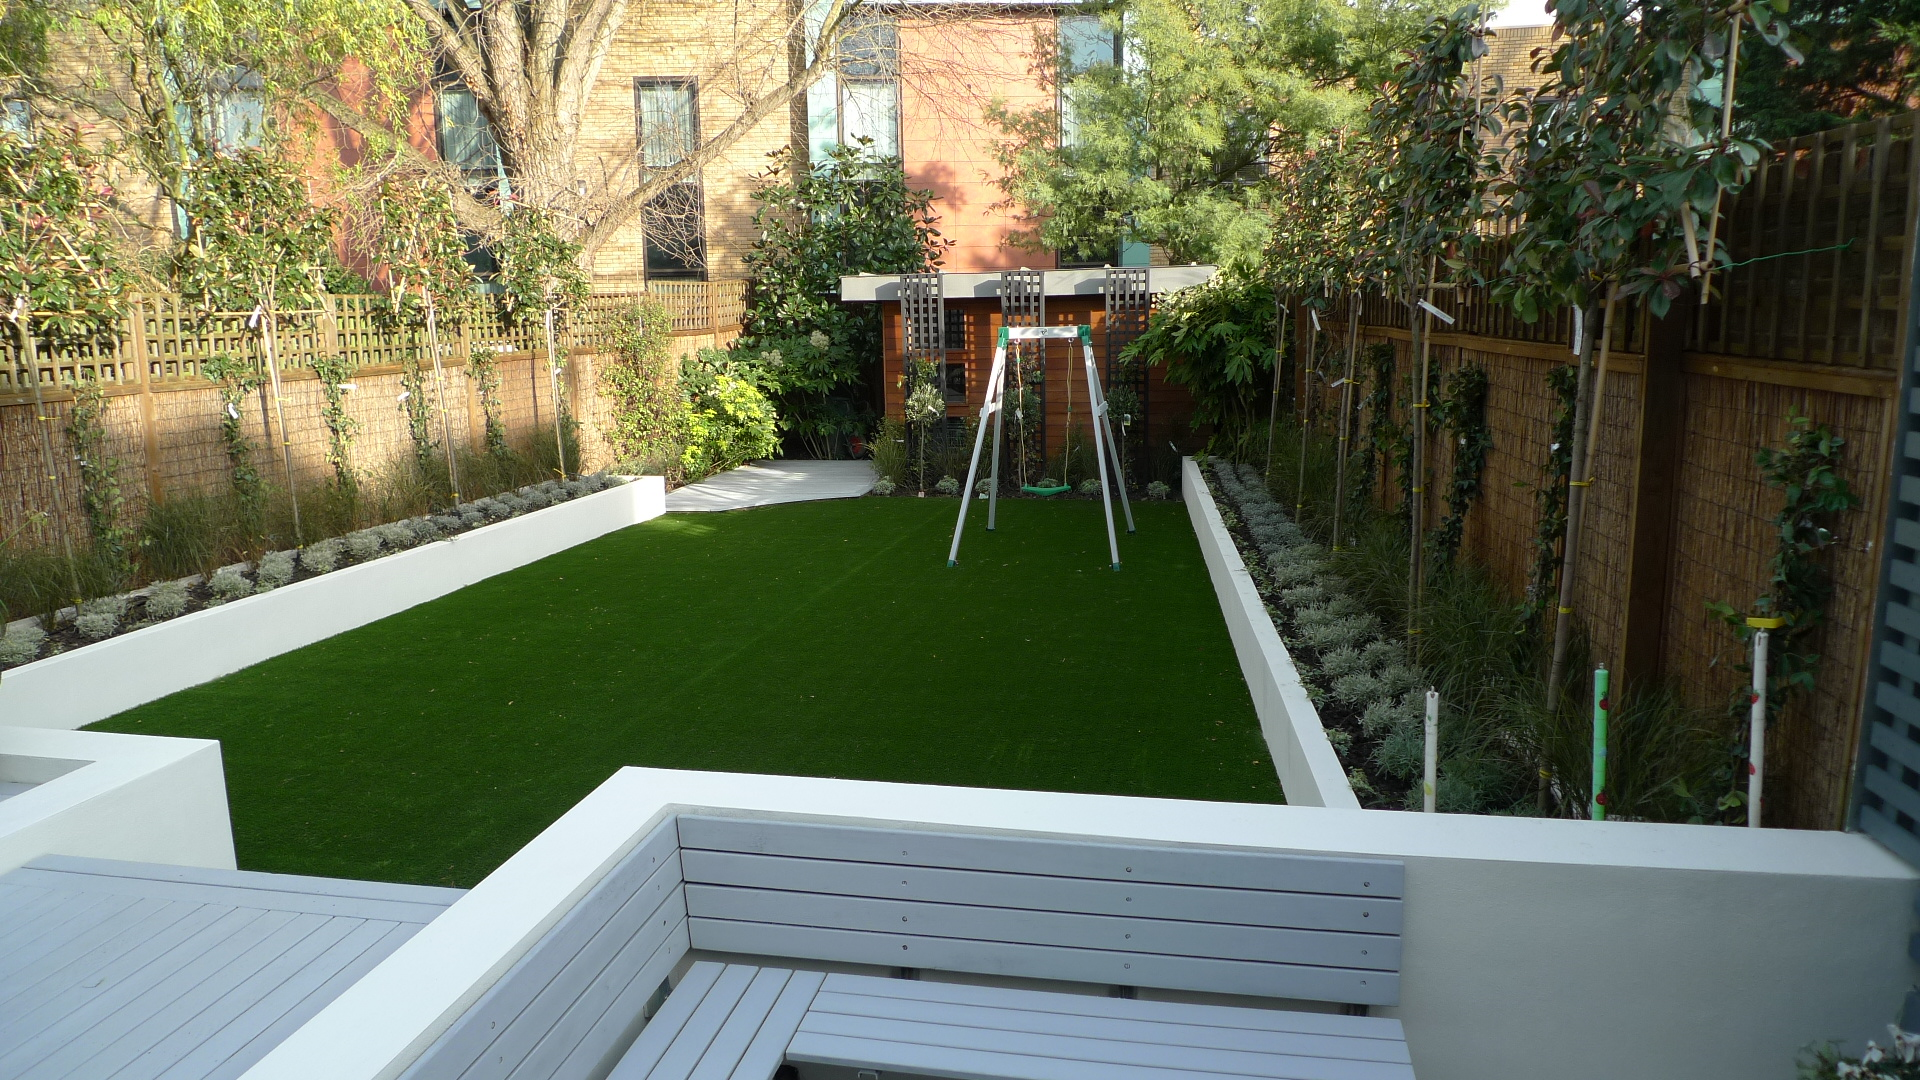 Modern garden design ideas london london garden design for Garden design ideas in uk